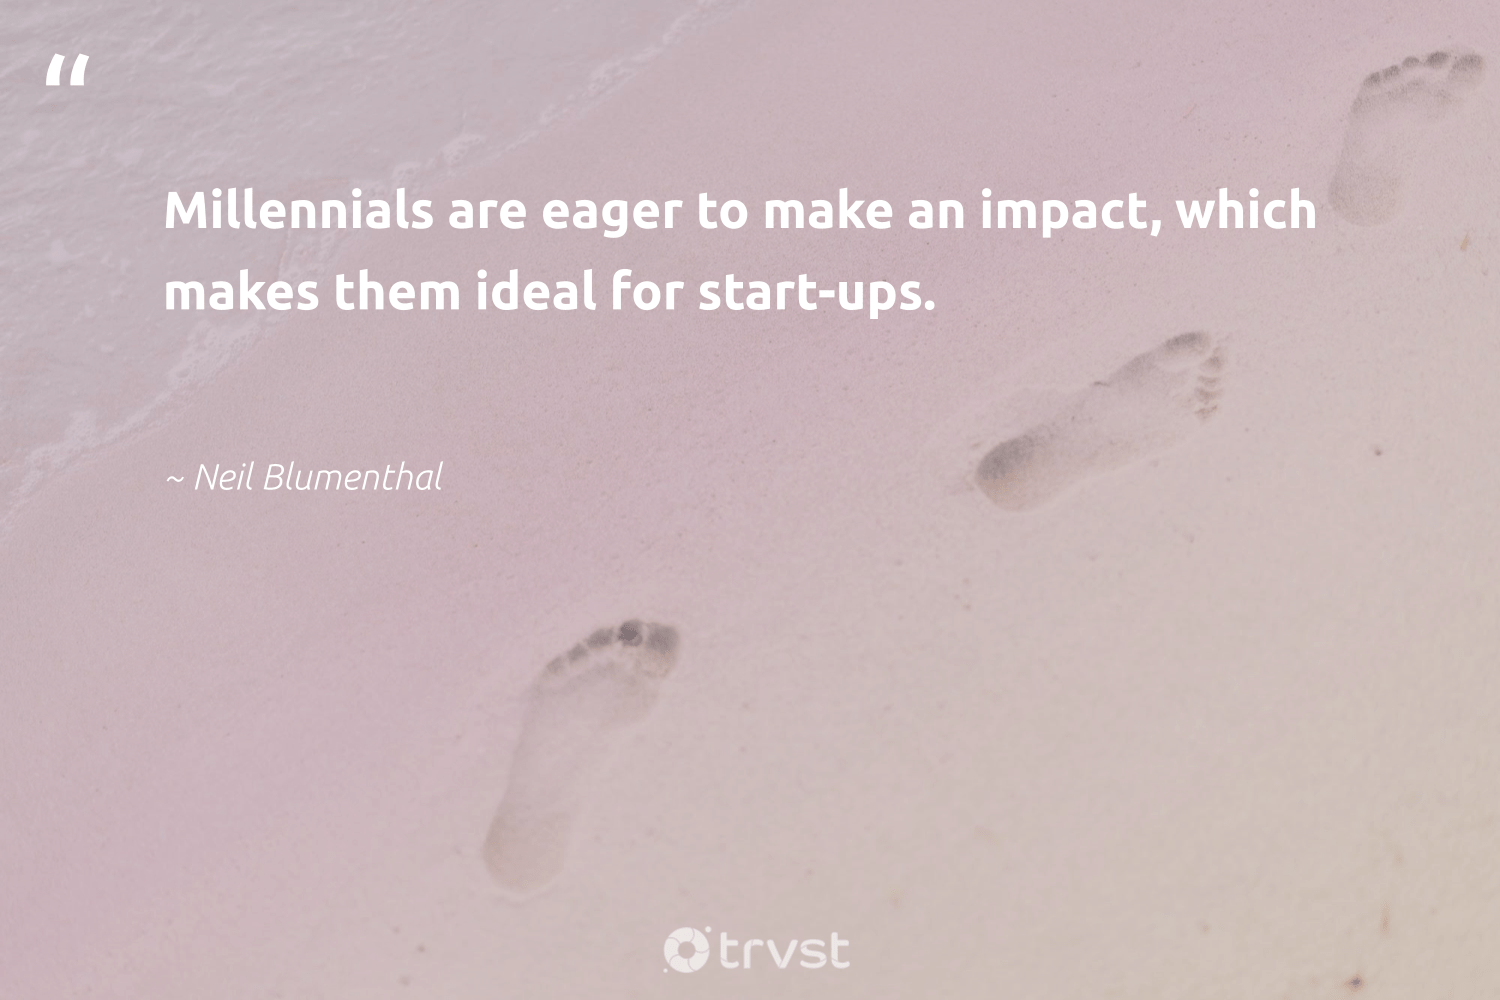 """Millennials are eager to make an impact, which makes them ideal for start-ups.""  - Neil Blumenthal #trvst #quotes #impact #ethicalbusiness #dogood #betterplanet #planetearthfirst #giveback #dotherightthing #weareallone #takeaction #socialchange"